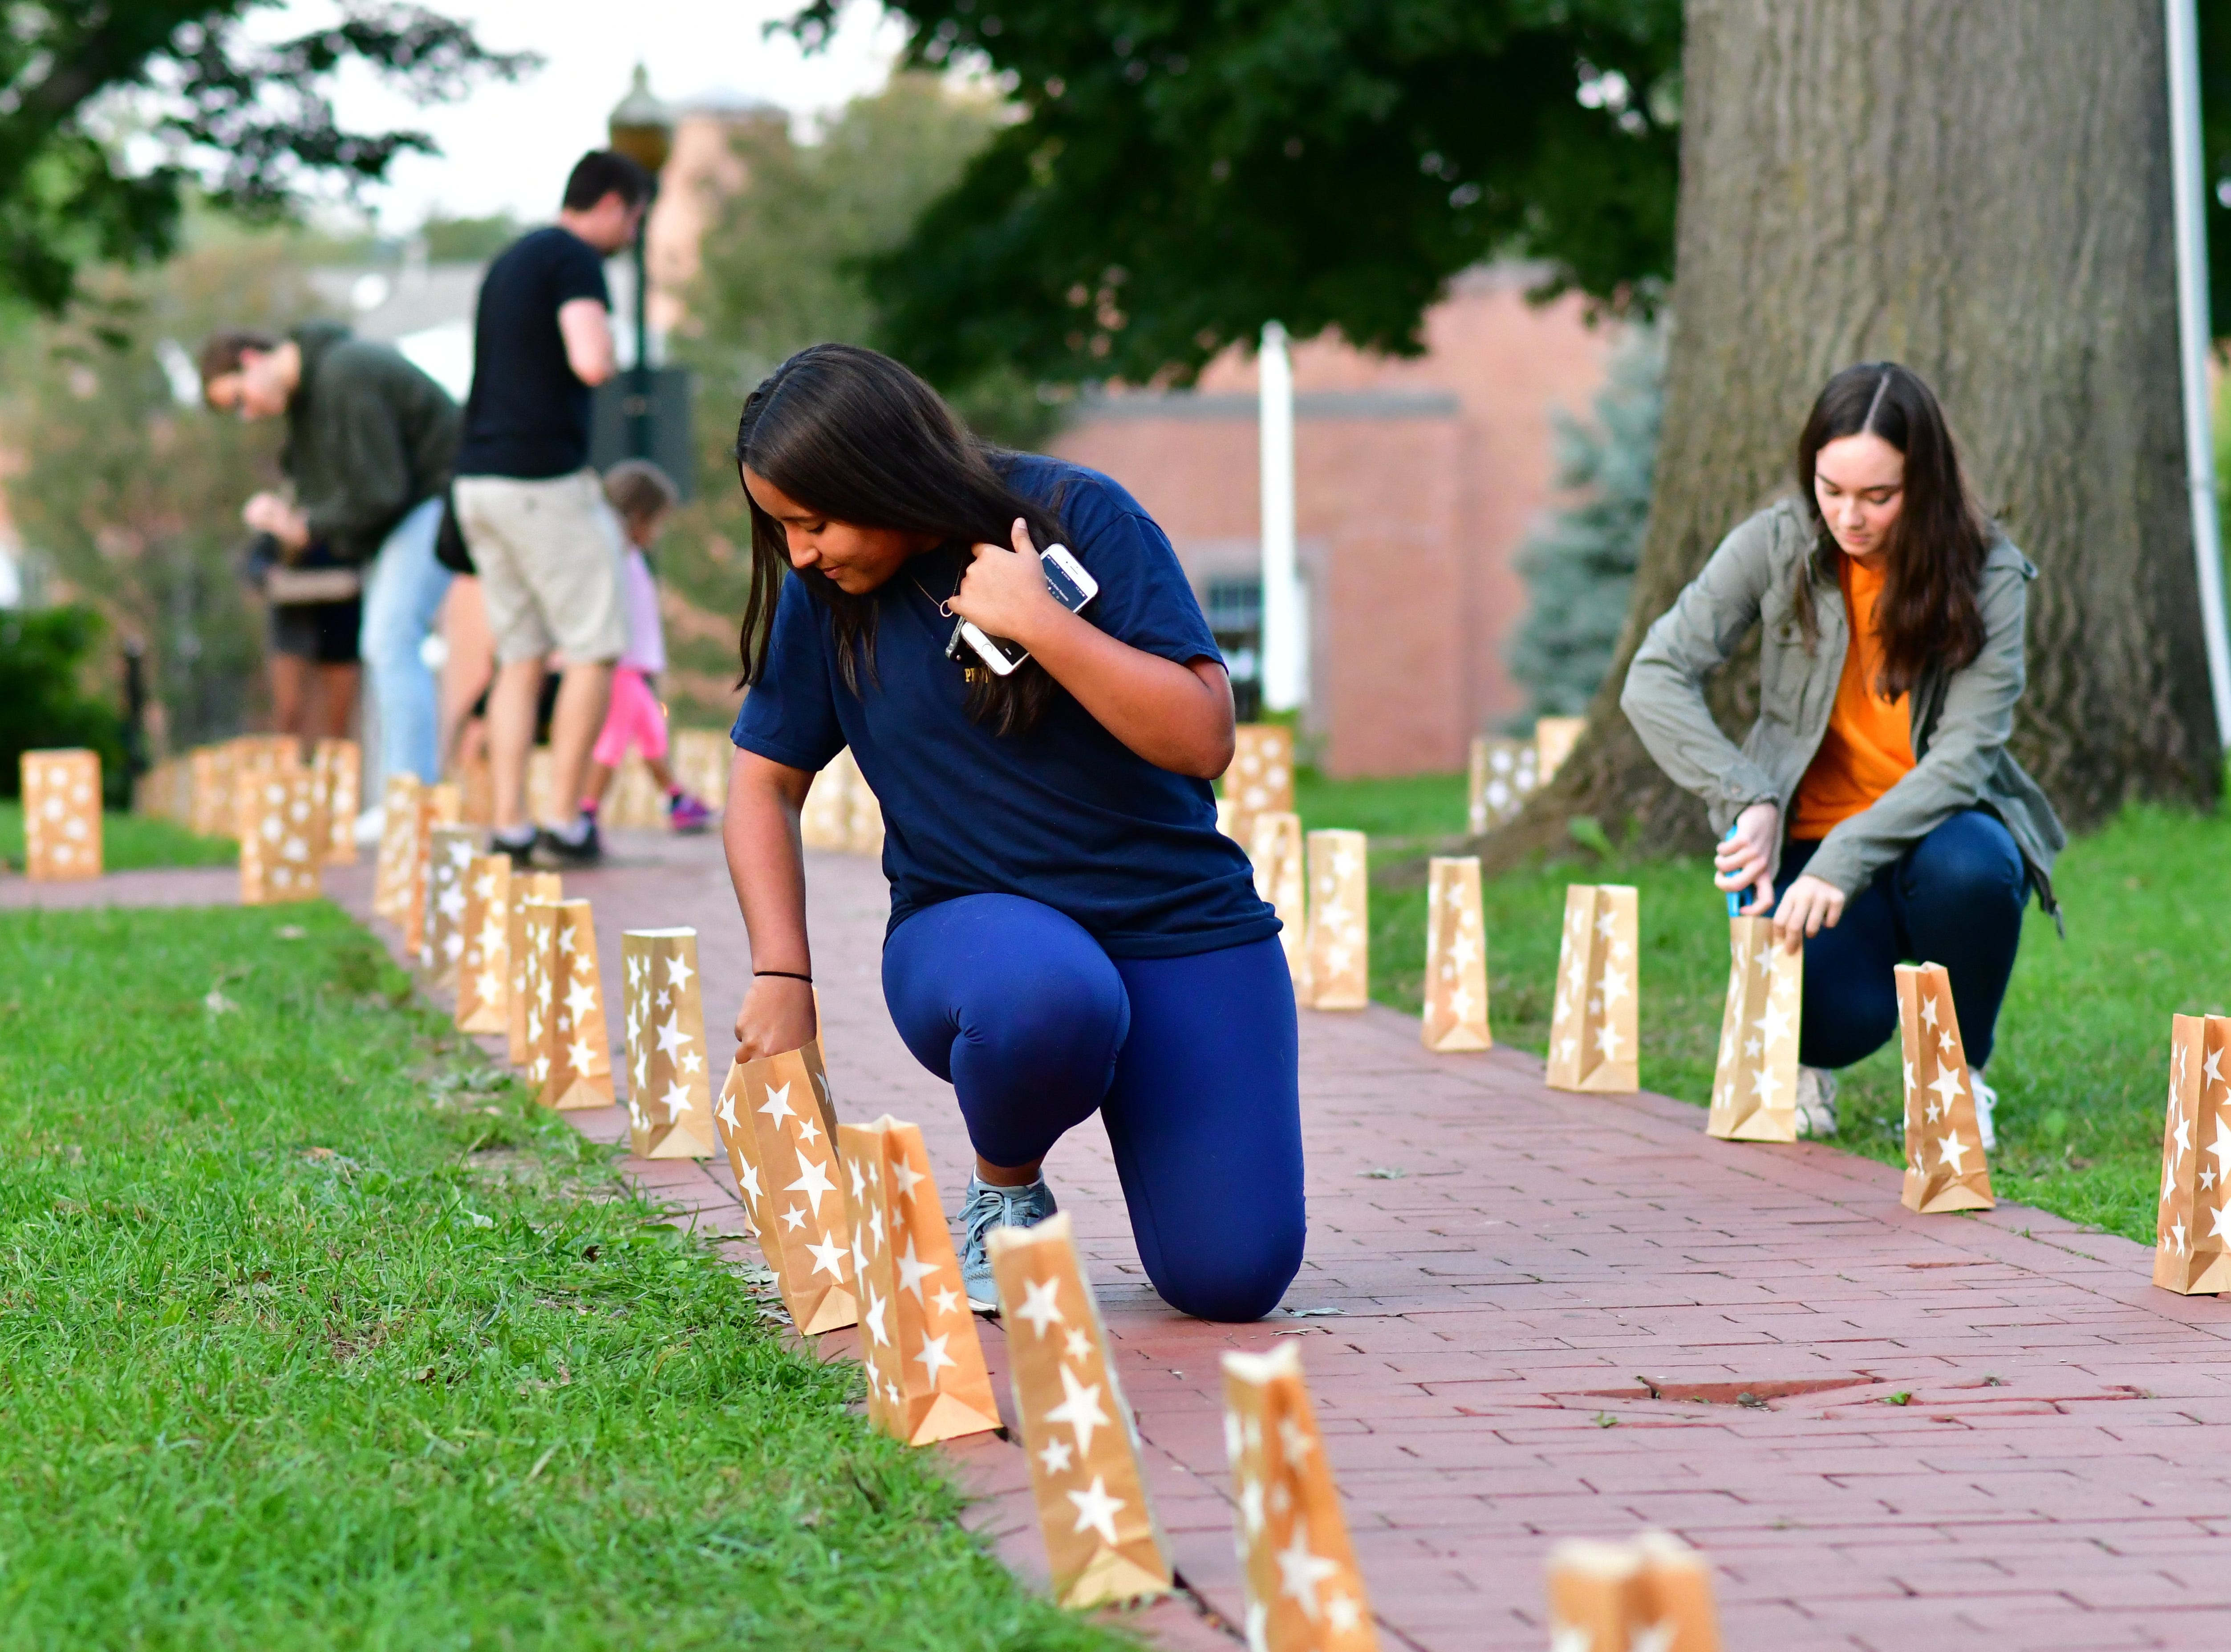 Francesca Chinea, left.  The Gold Star Mother's Day Committee sponsored its eighth annual event commemorating Gold Star Mother's Day on Sept. 30, at Van Neste Park, Ridgewood. After a short ceremony, hundreds of luminaries were lit to honor Gold Star Mothers (moms who had lost sons and daughters to the war) and their families.